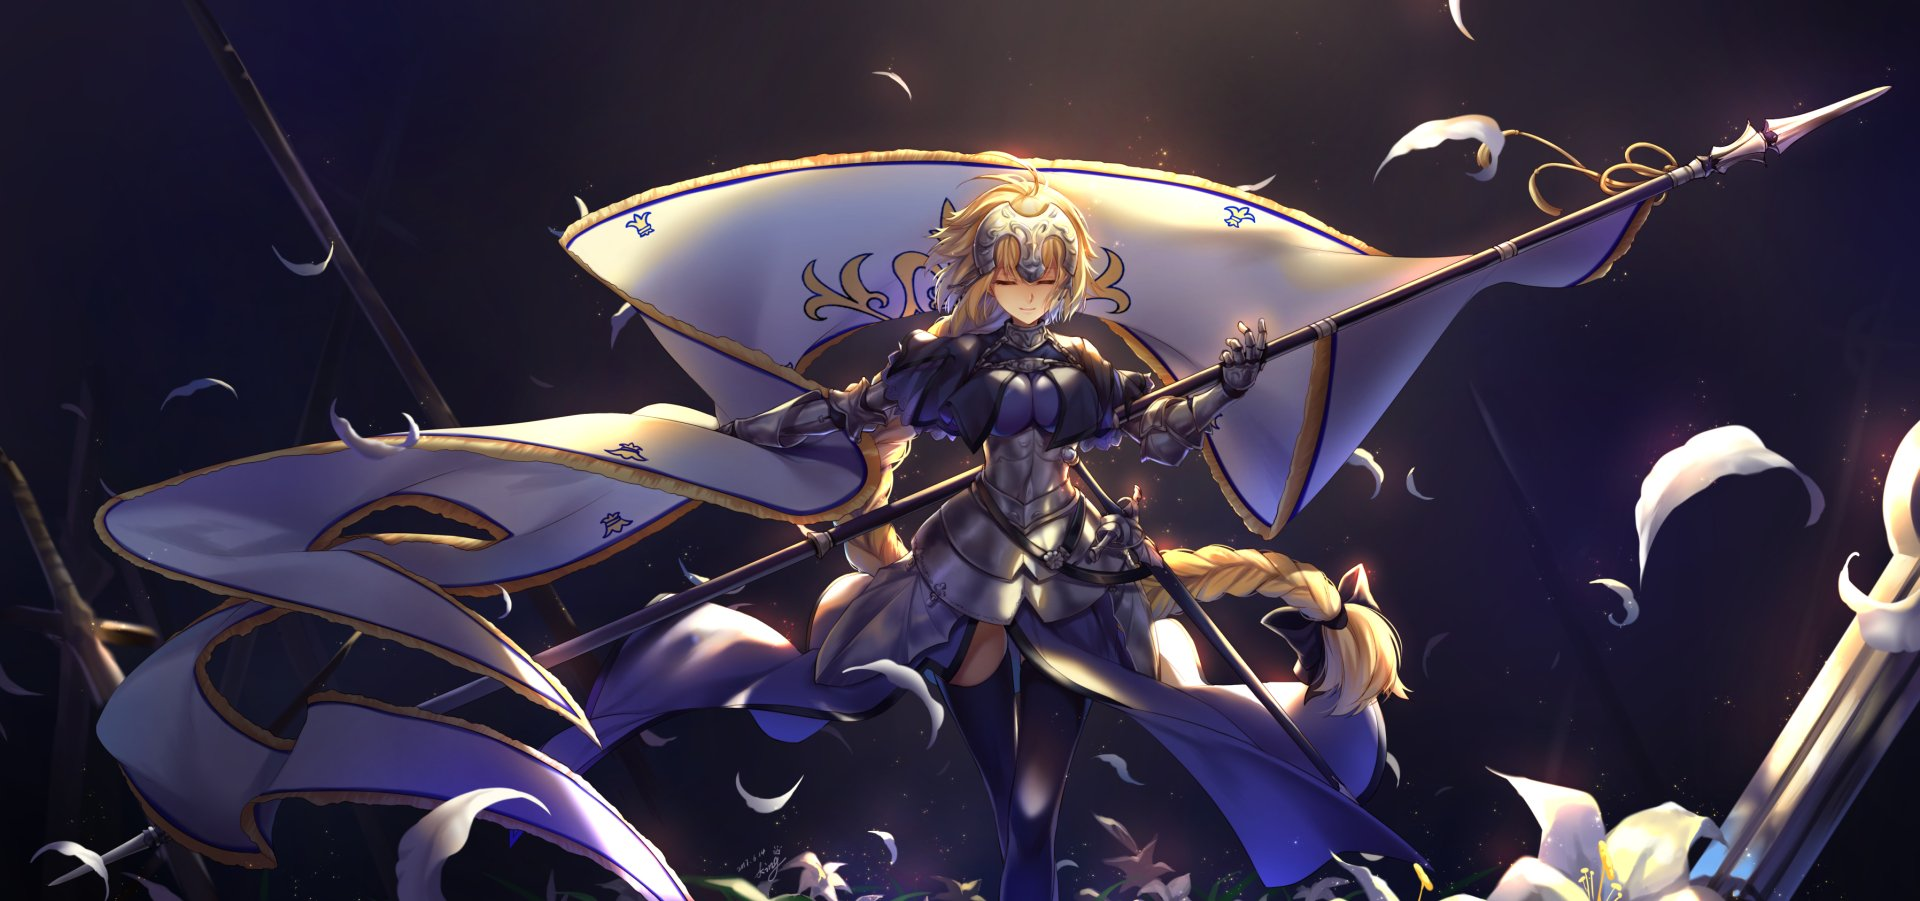 Wallpapers ID:843398